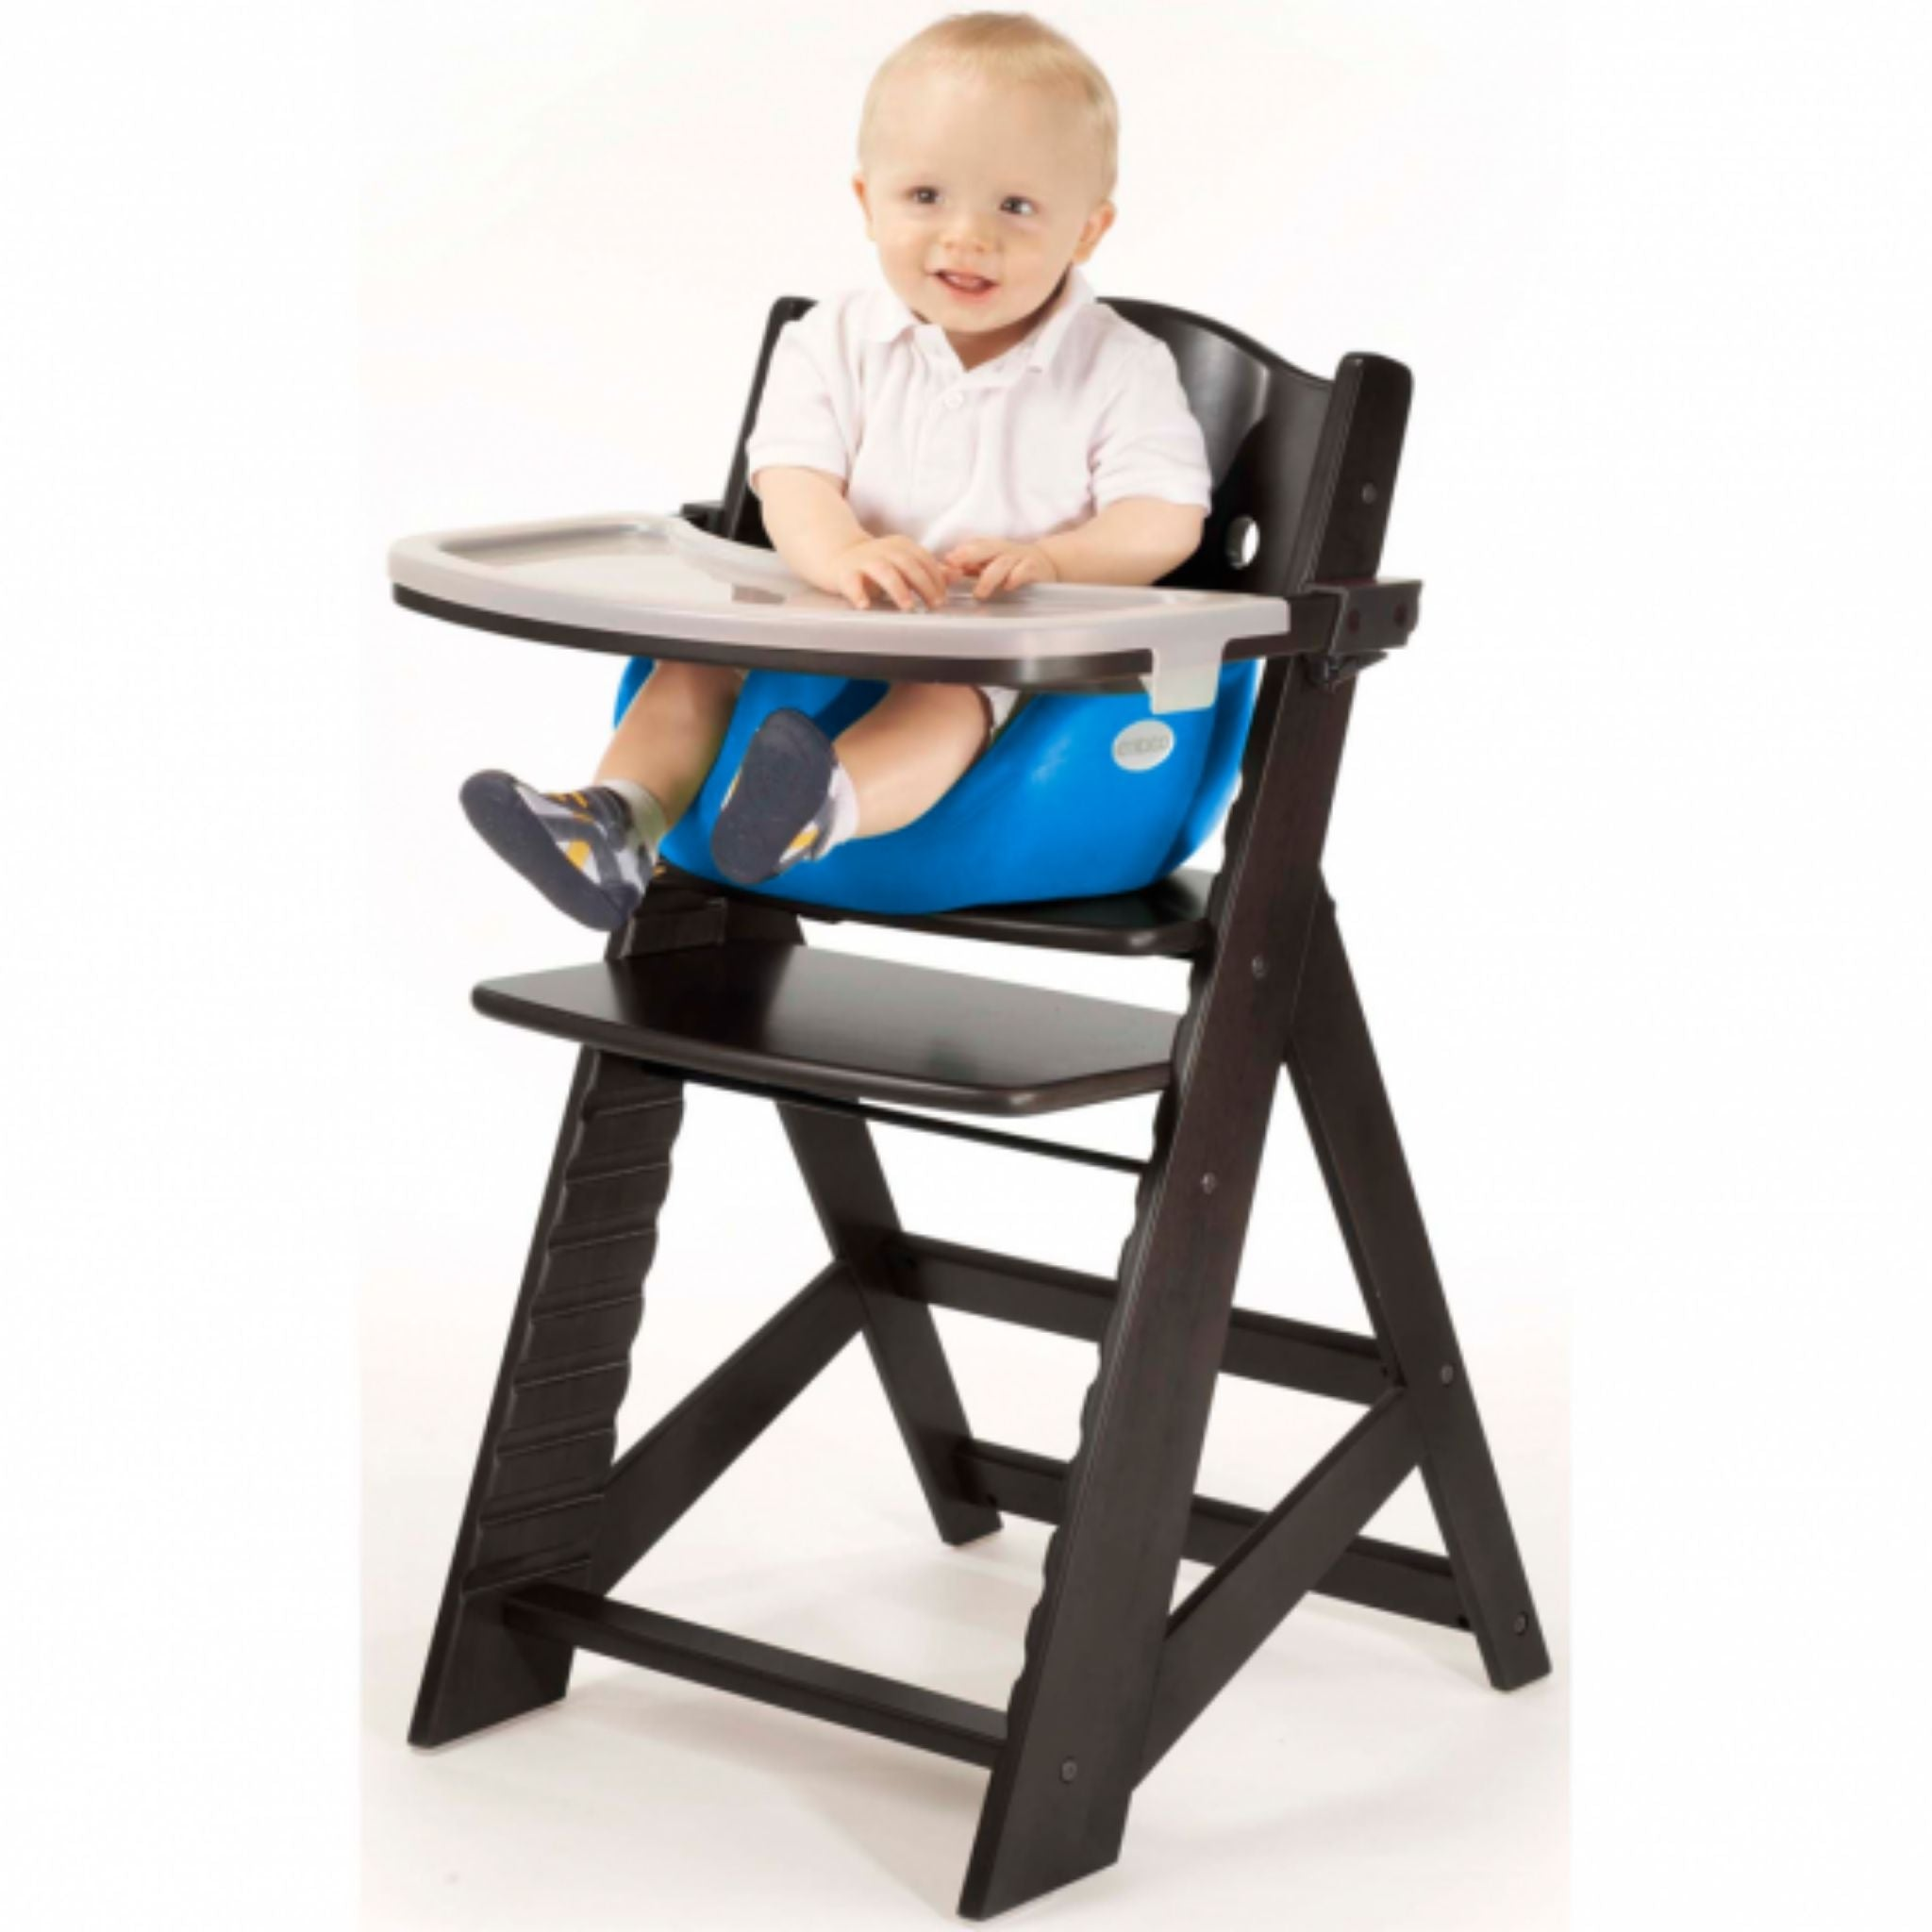 keekaroo adjustable high chair with infant insert and tray espresso black coloured wood chair aqua bright blue infant insert